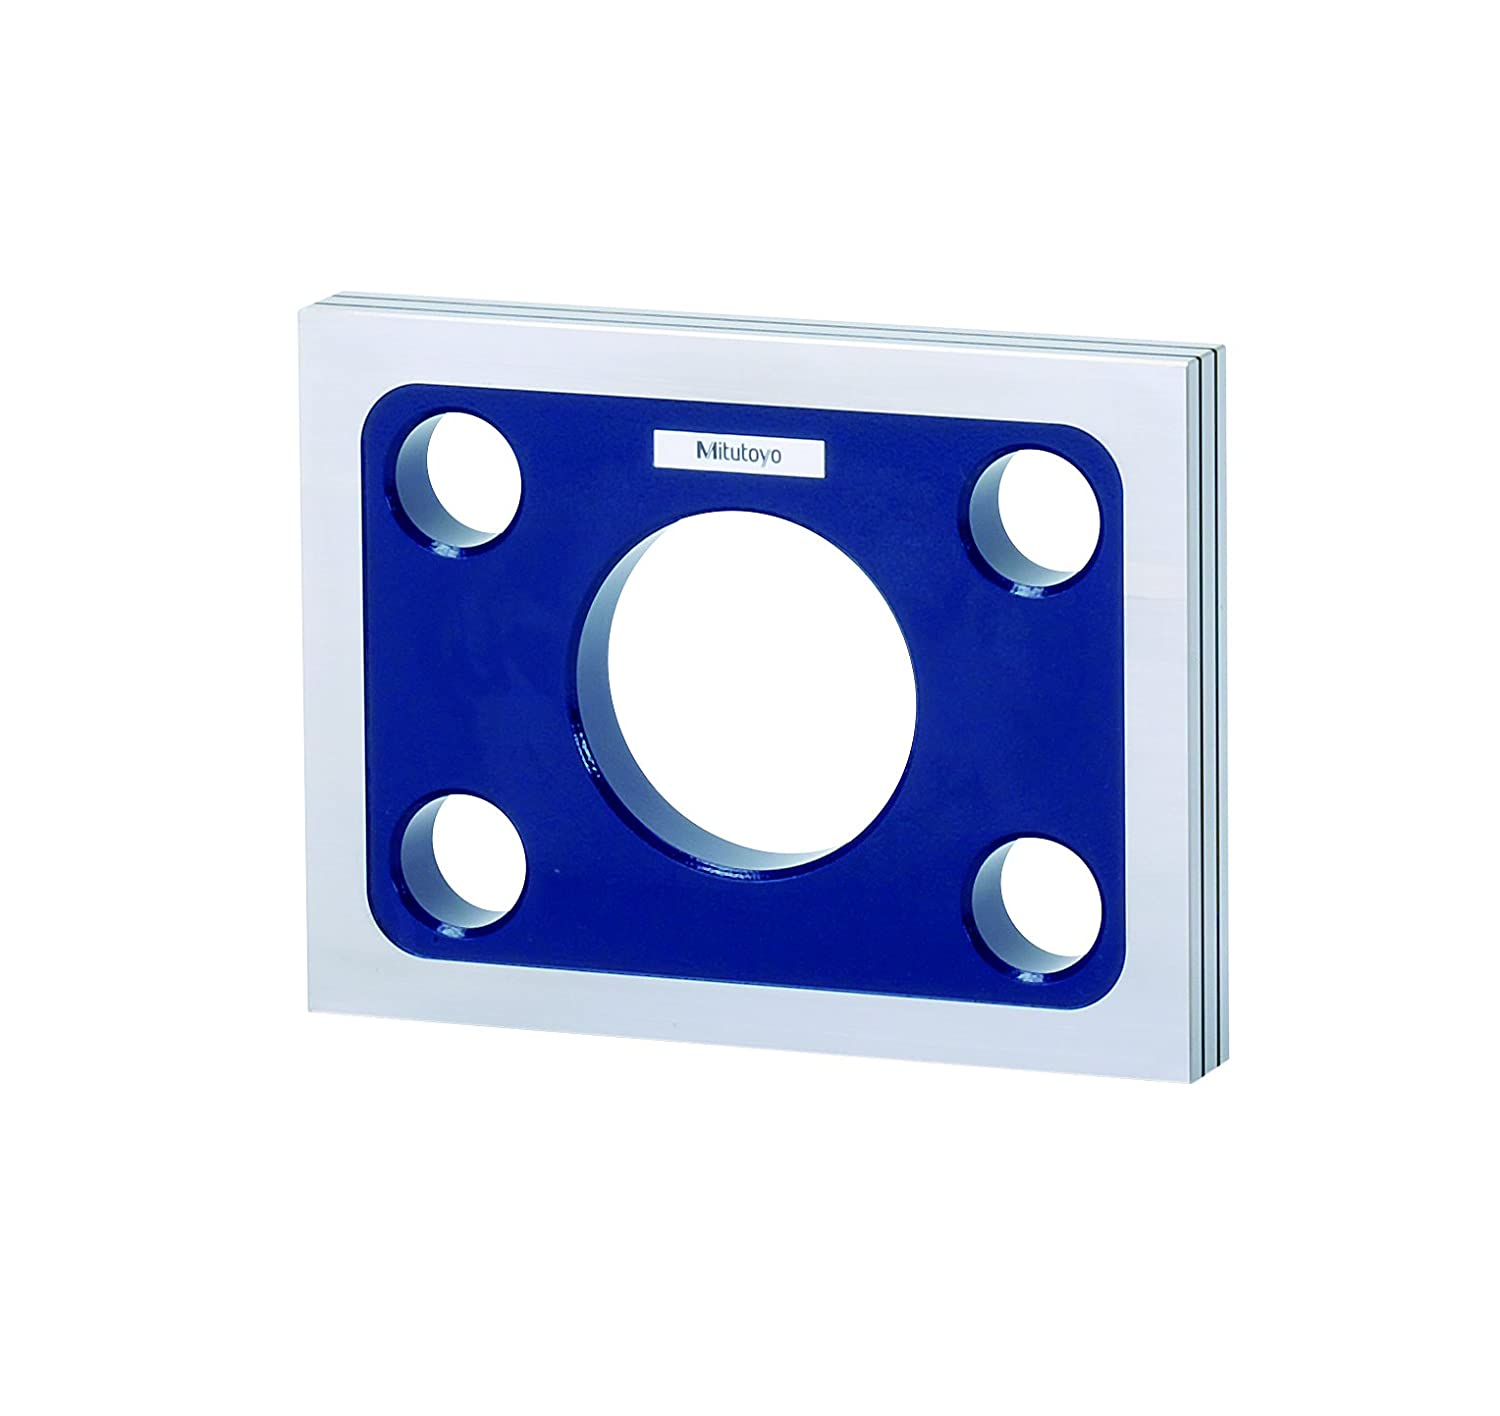 Image of Home Improvements Mitutoyo 311-112 High Precision Square, 160 mm Width x 210 mm Length x 25 mm Thickness